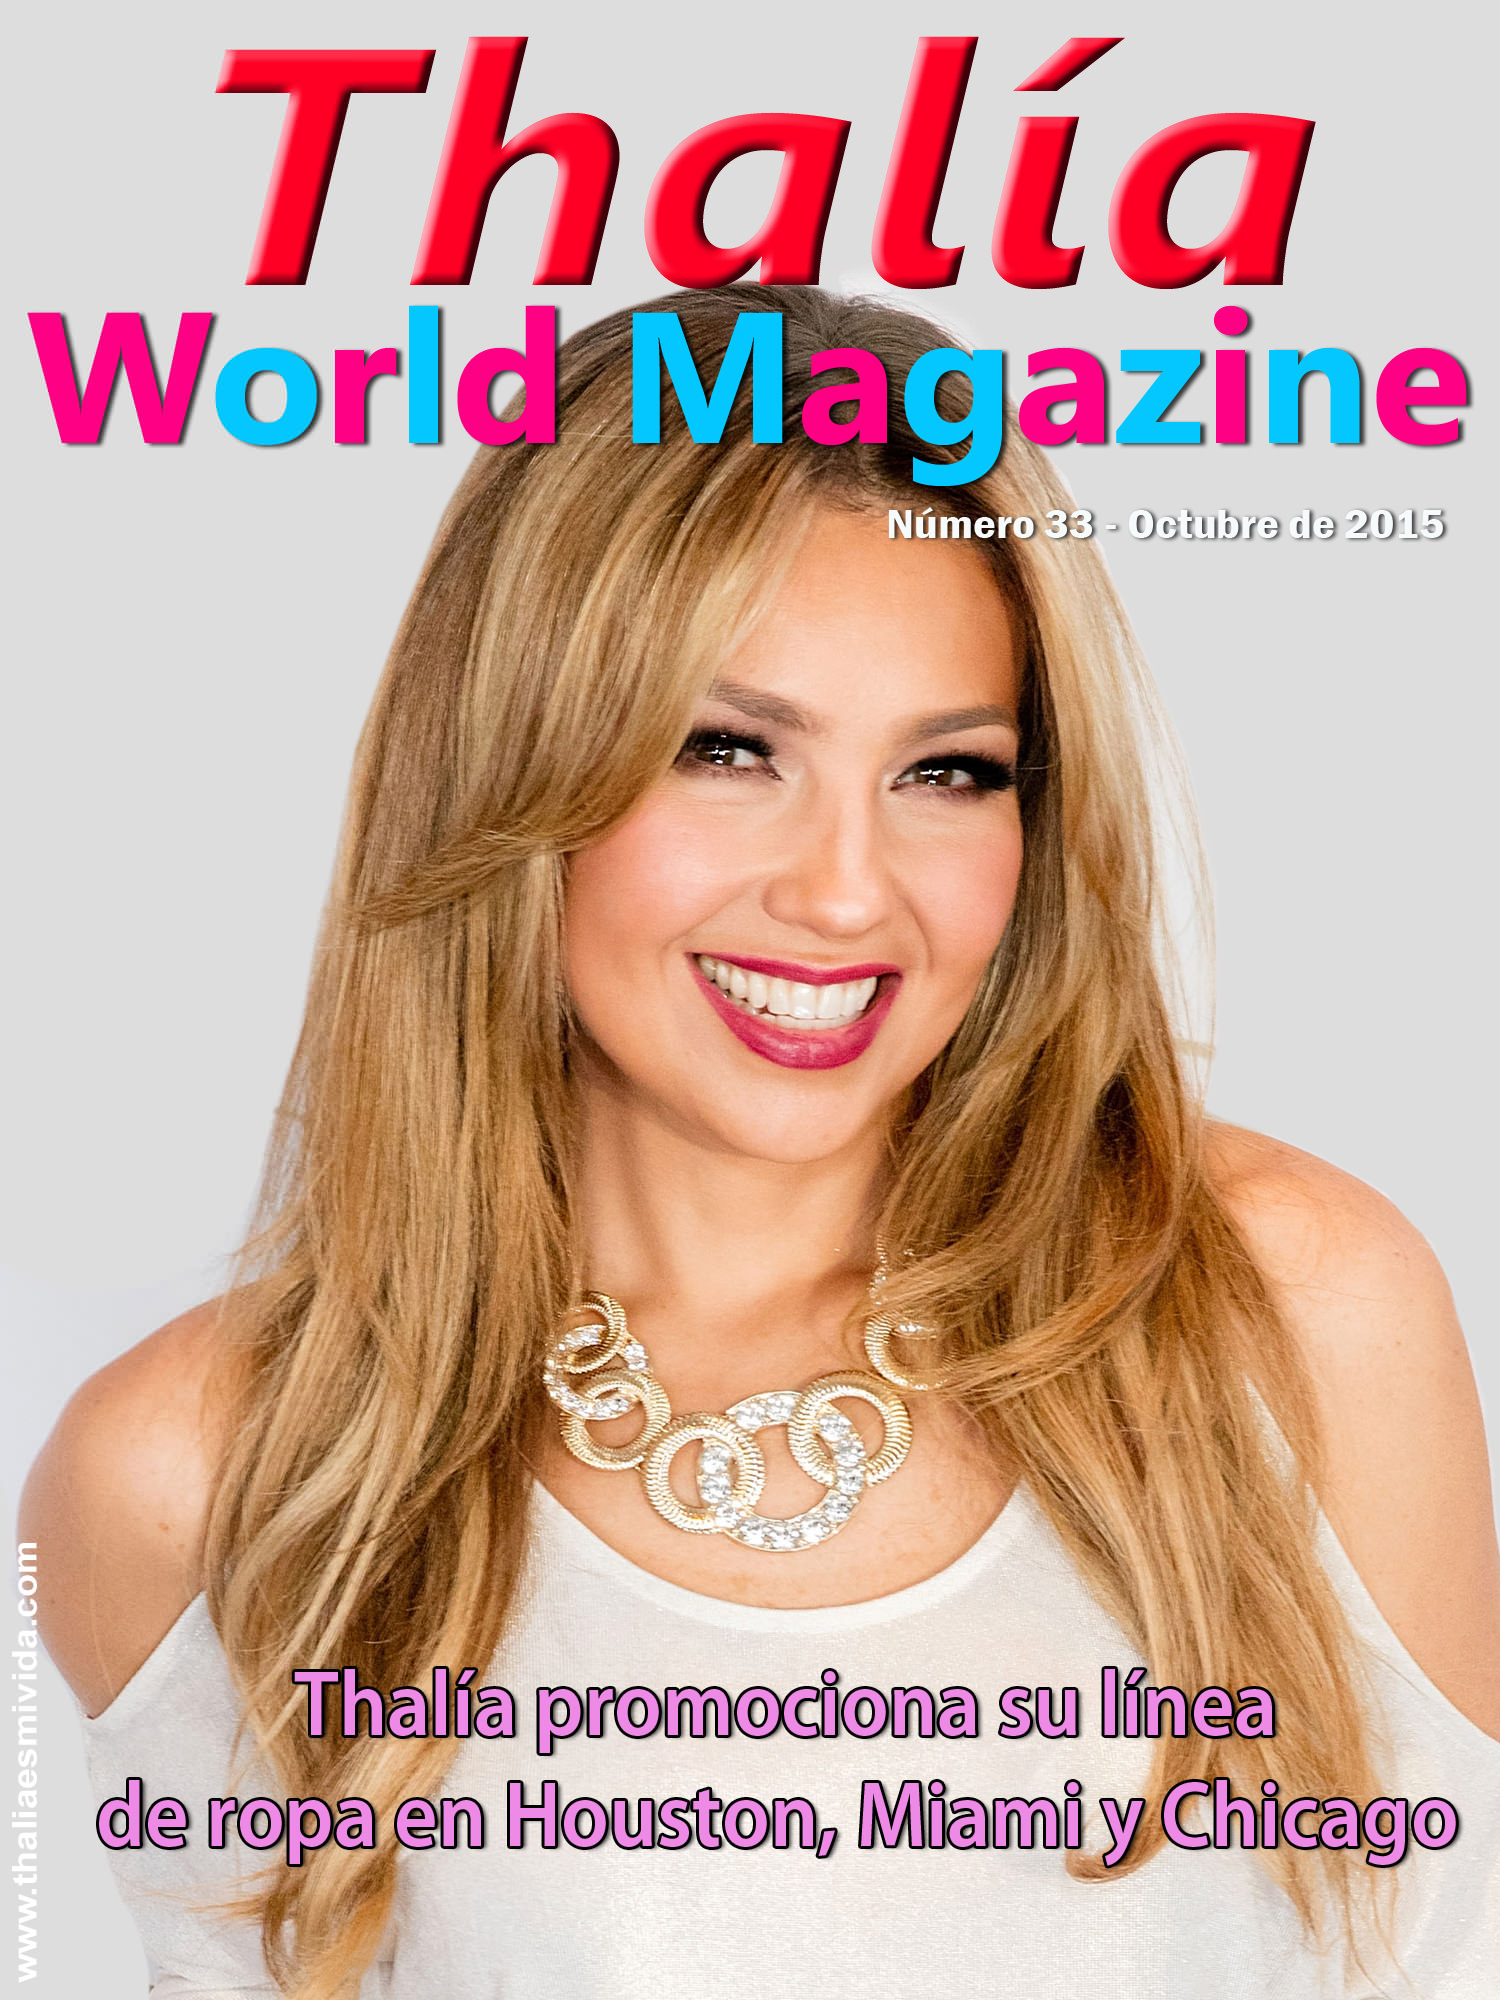 Thalia World Magazine 33